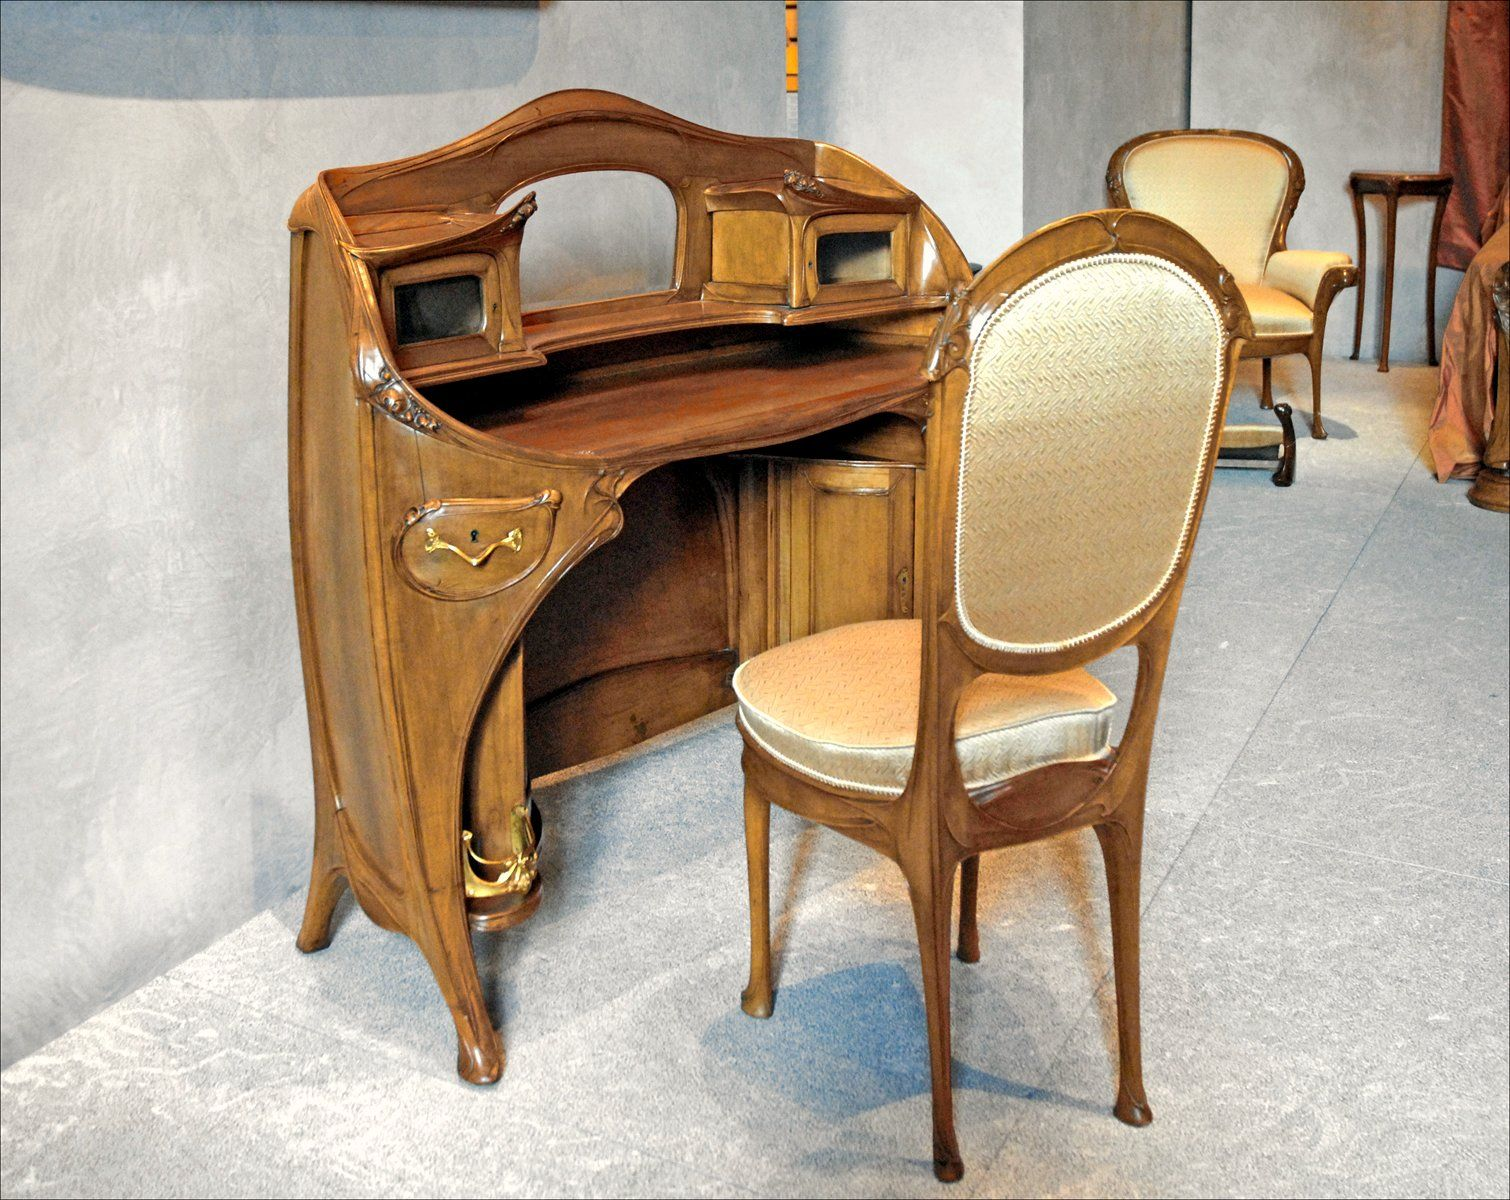 Art nouveau style furniture - Furniture Created In The Art Nouveau Style Was Prominent From The Late 19th Century To The